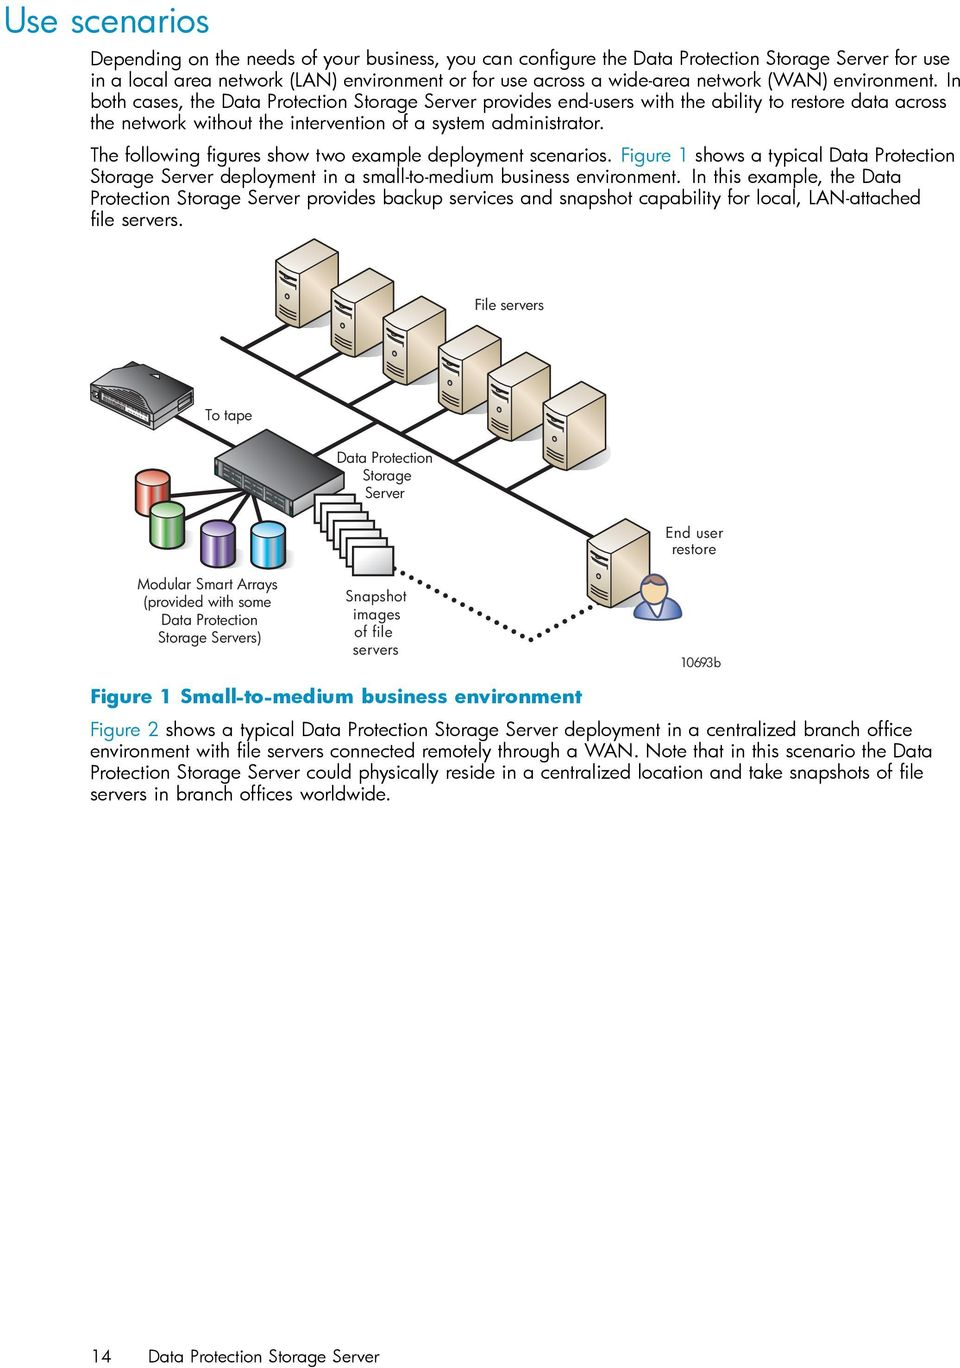 The following figures show two example deployment scenarios. Figure 1 shows a typical Data Protection Storage Server deployment in a small-to-medium business environment.